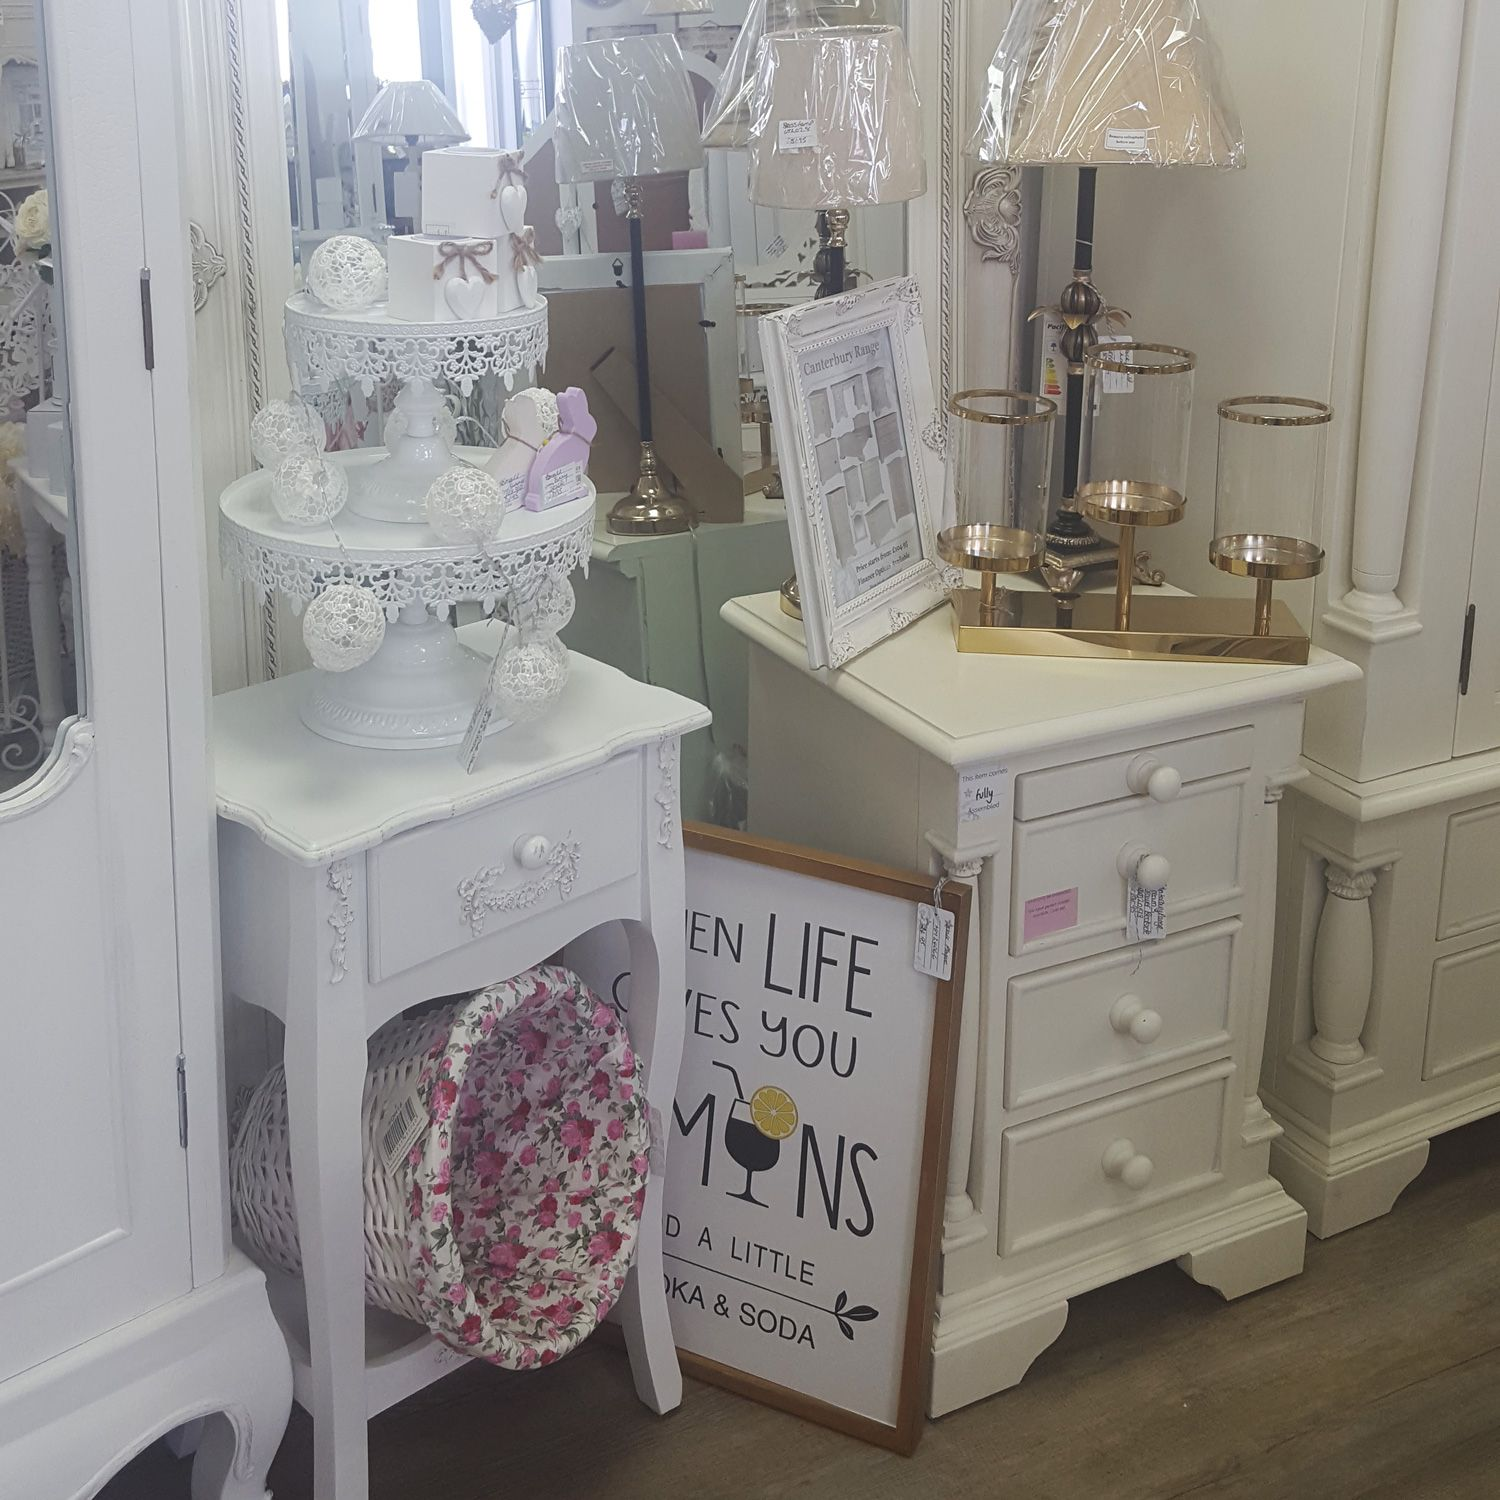 Doncaster ShowrromInterior Shopshabby Chic Exclusive Showroom Offer Visit Our Beautiful And Save ONE WEEK ONLY